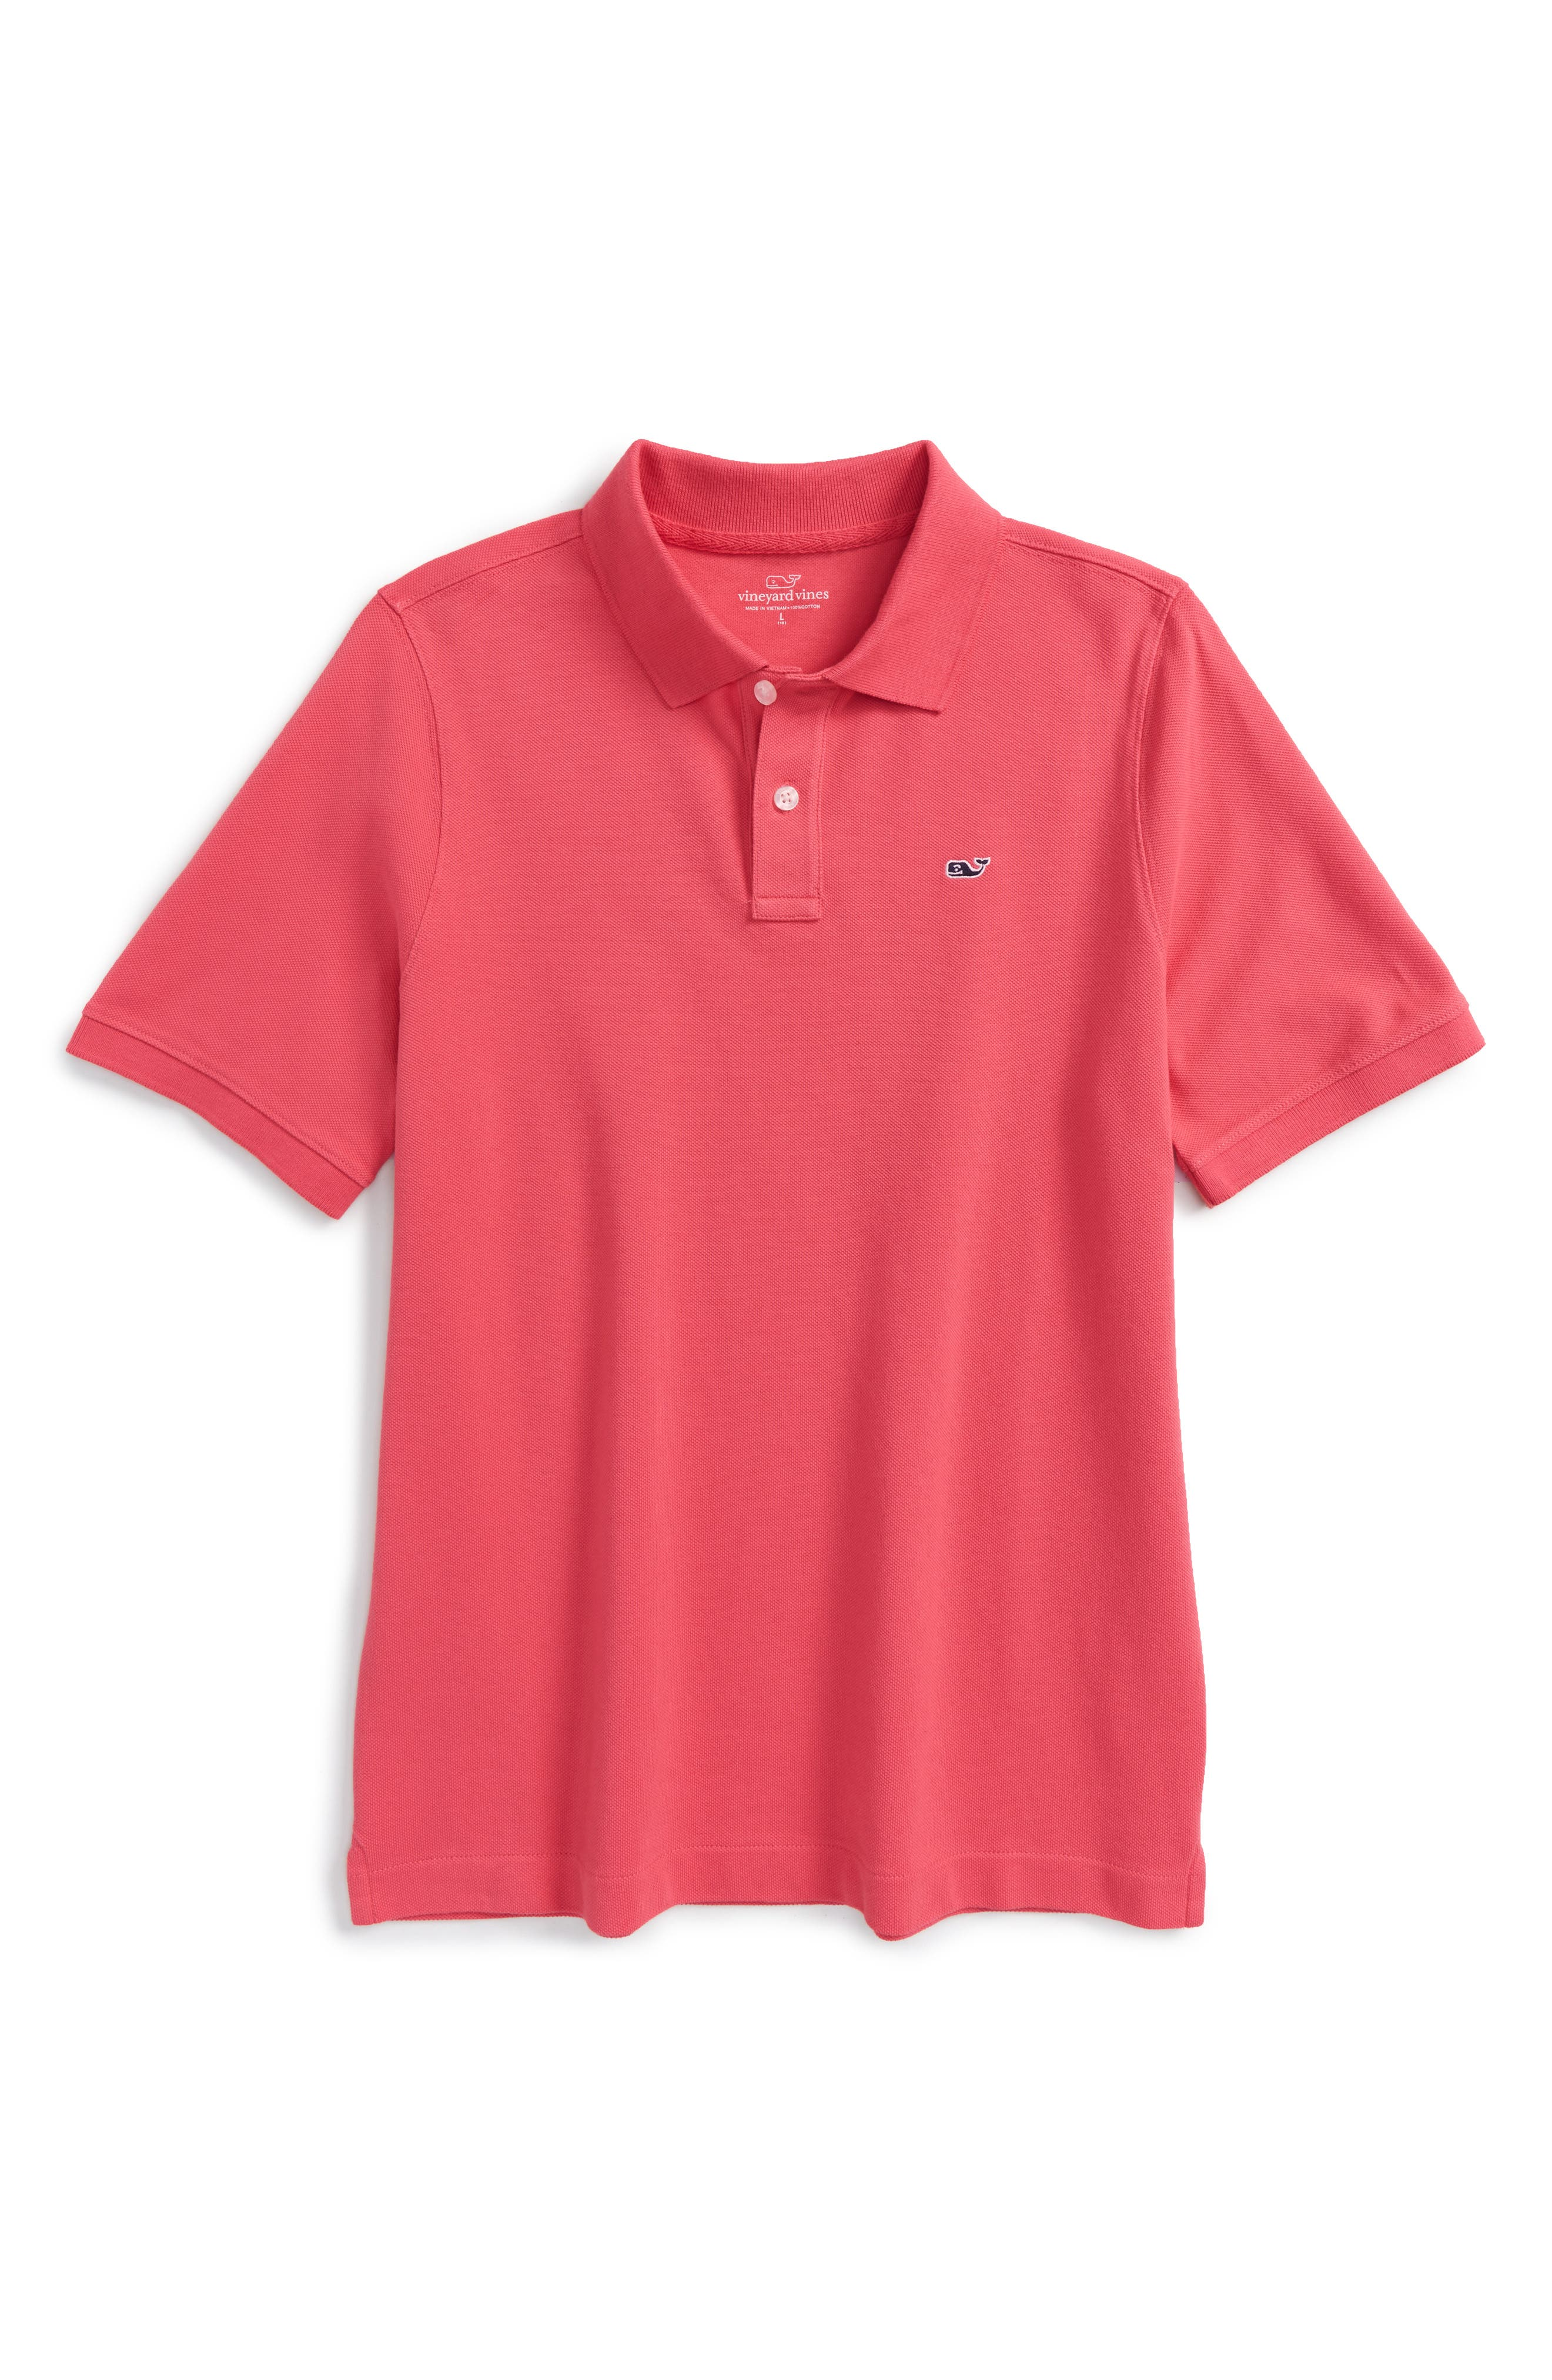 Main Image - vineyard vines Classic Piqué Cotton Polo (Toddler Boys, Little Boys & Big Boys)